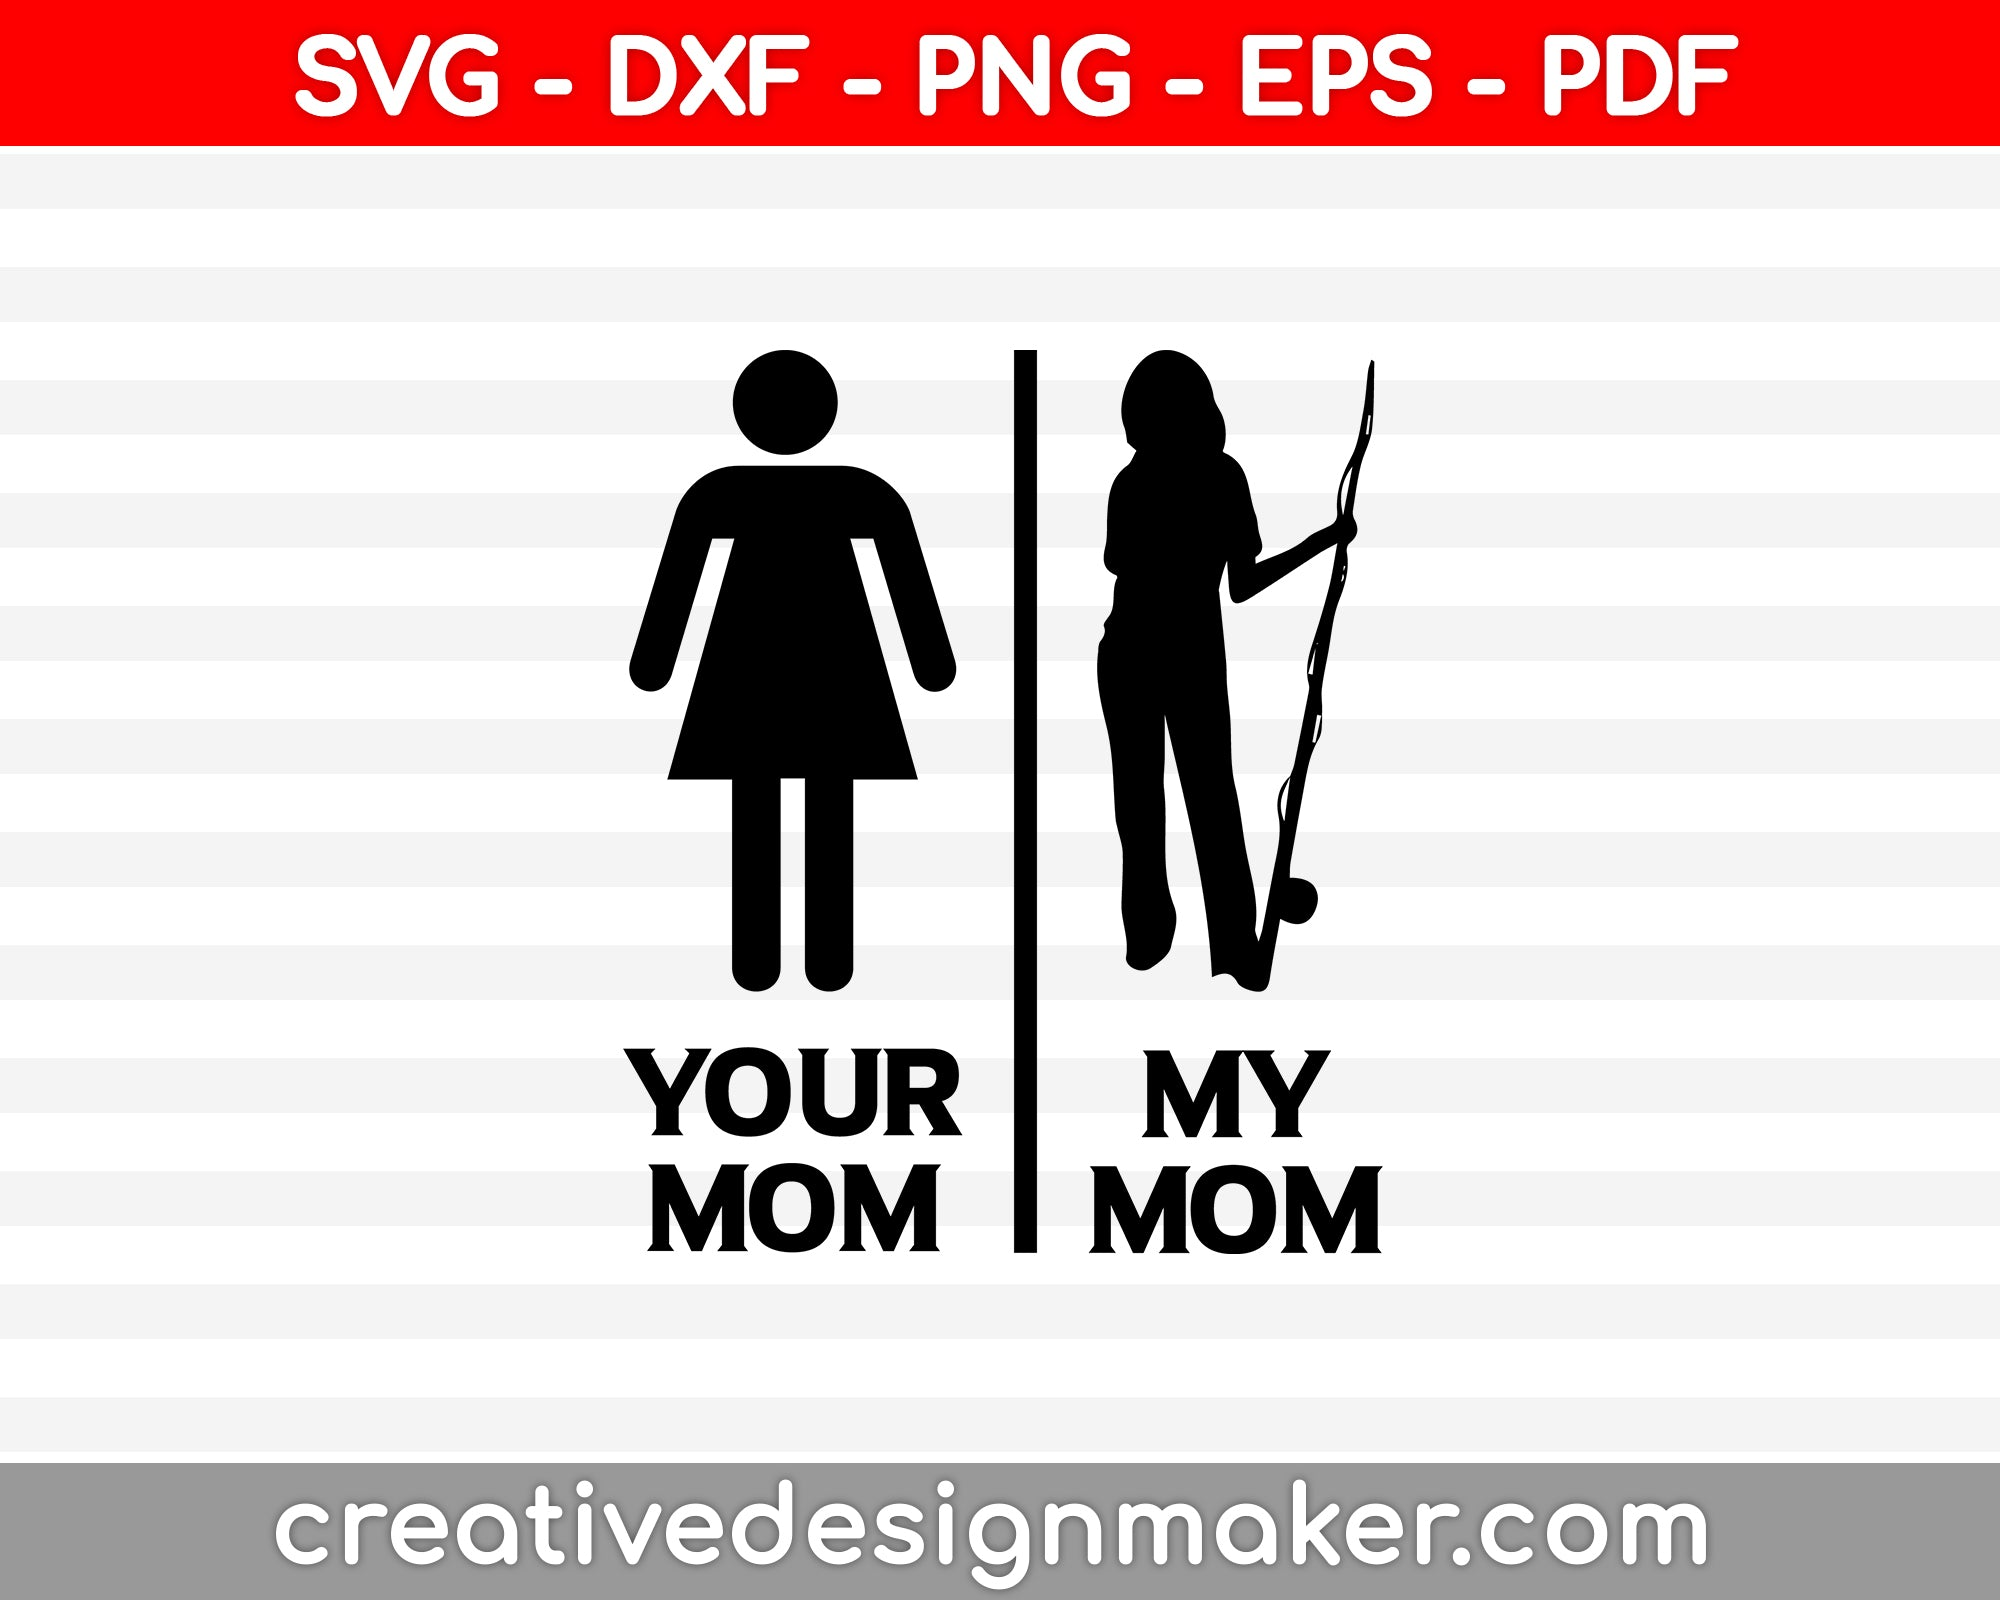 Your Mom My Mom SVG, DXF, PNG, EPS, PDF Printable Files